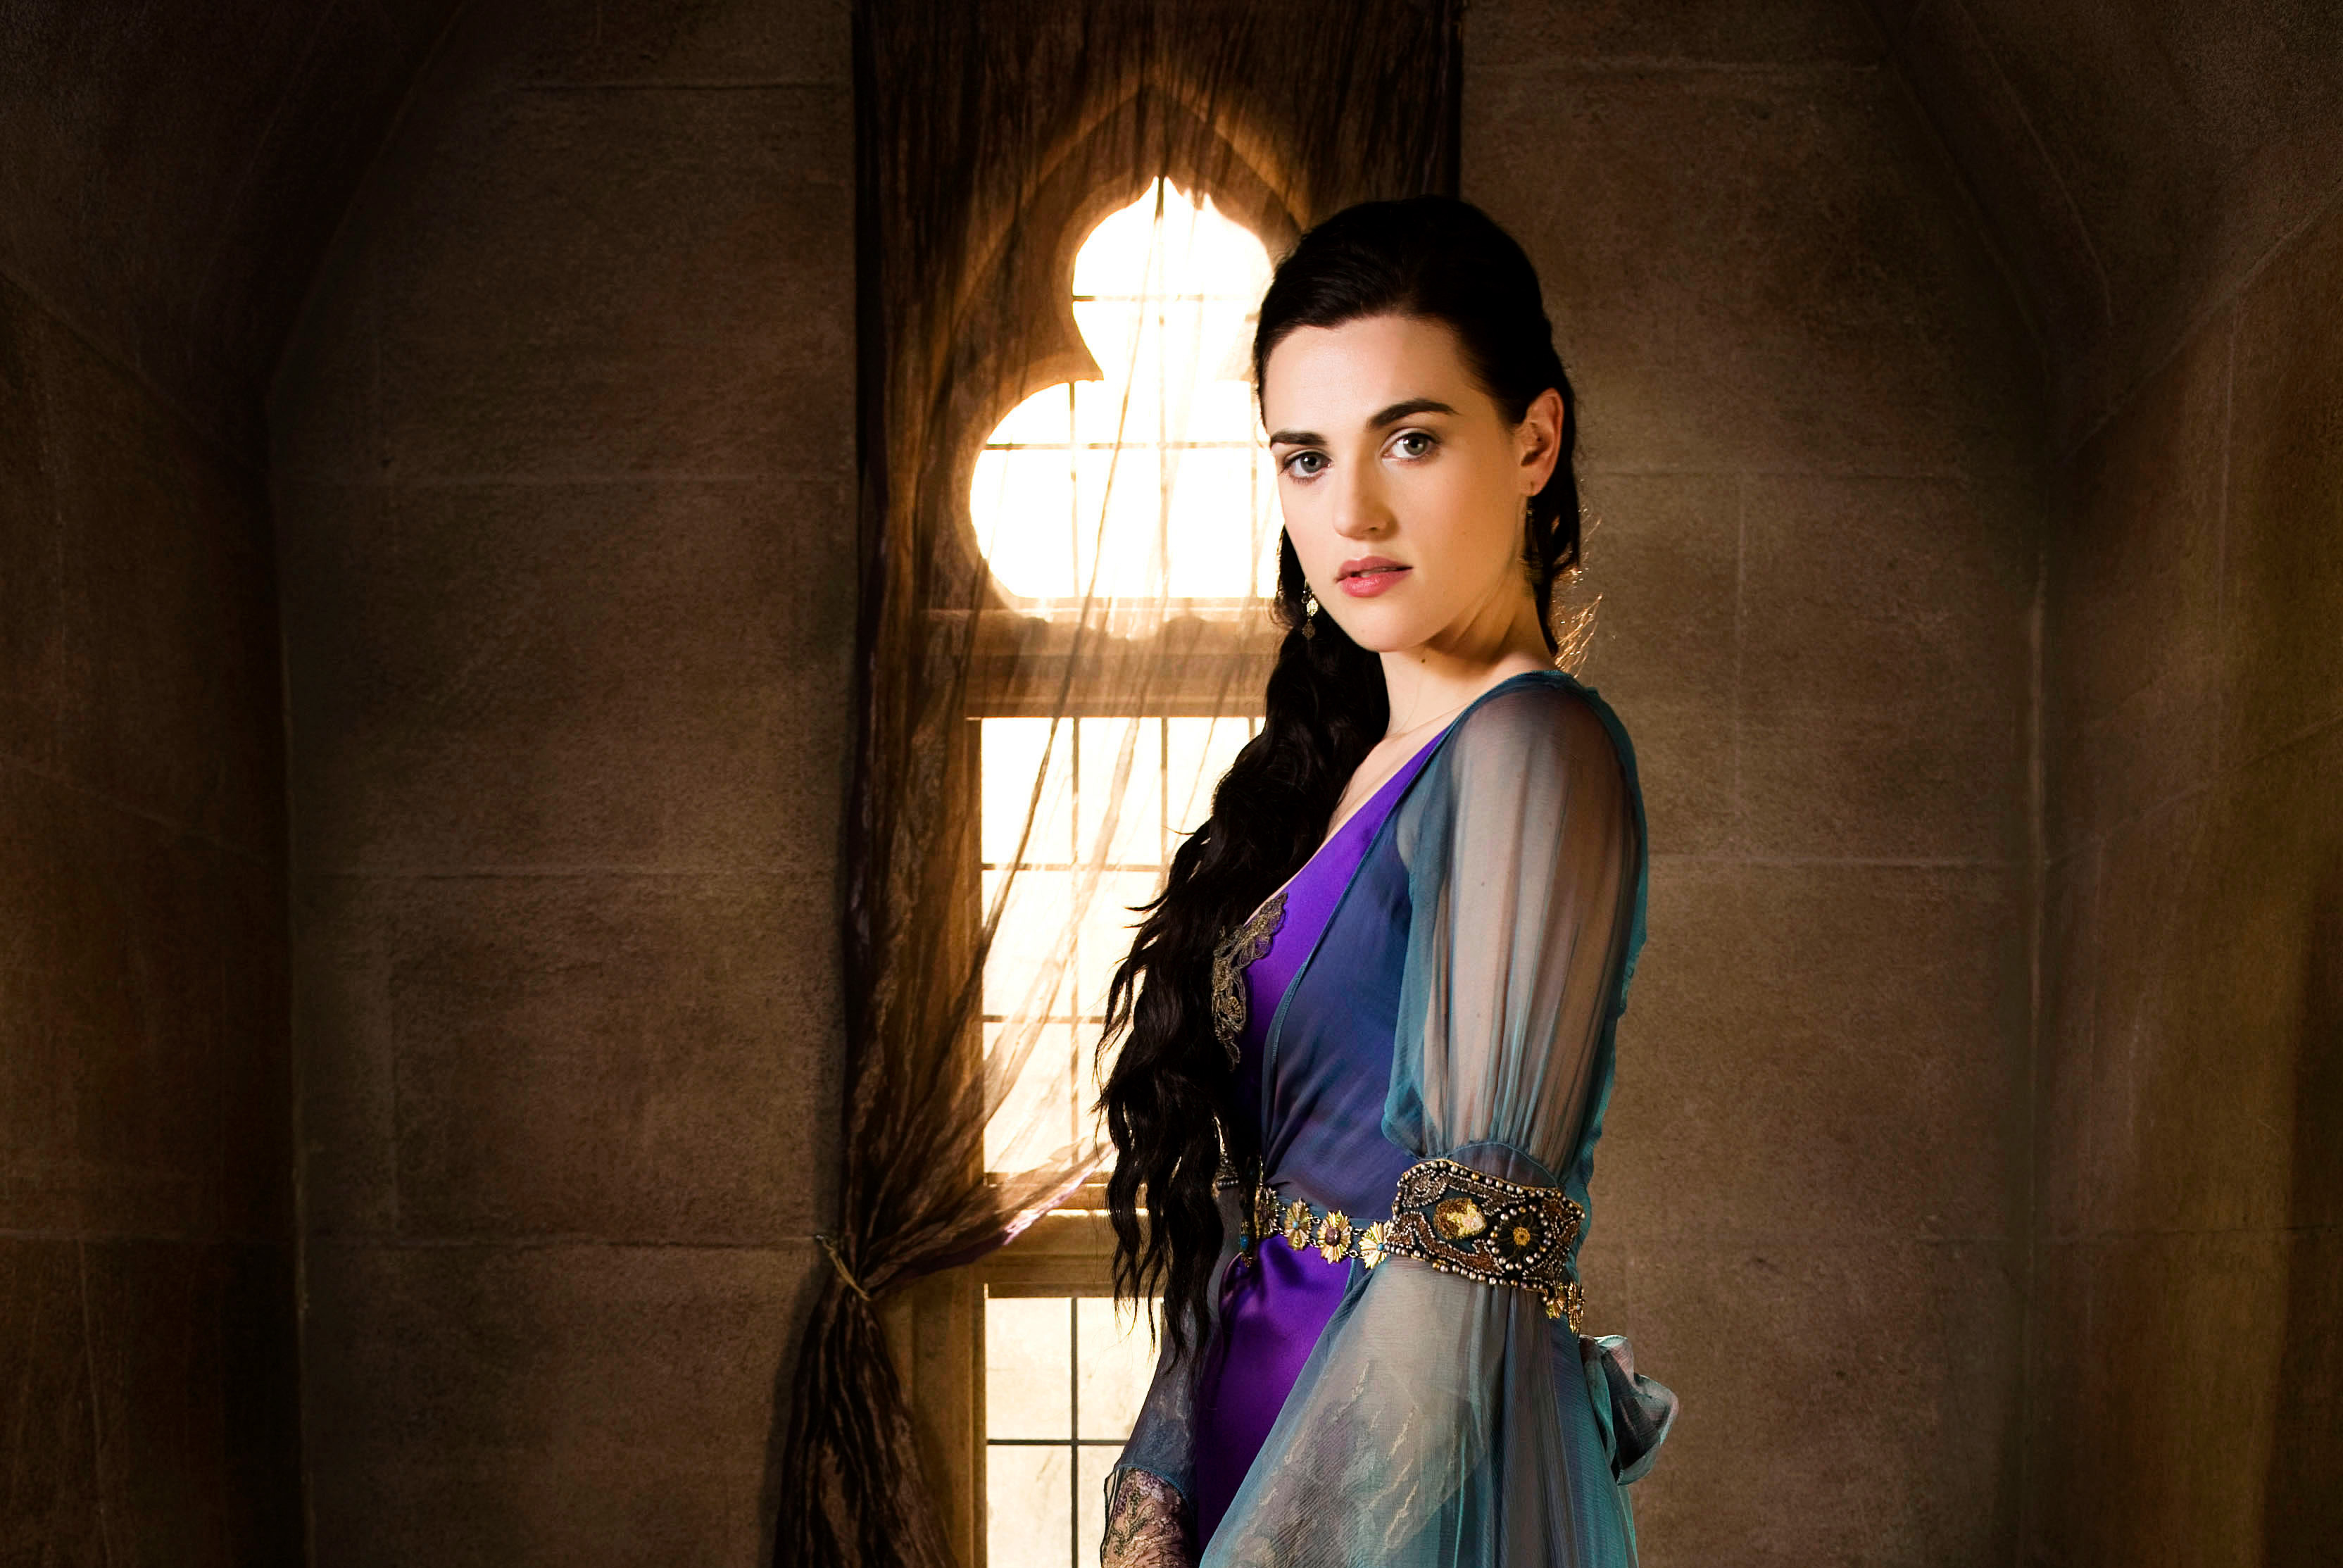 katie mcgrath 4k bu